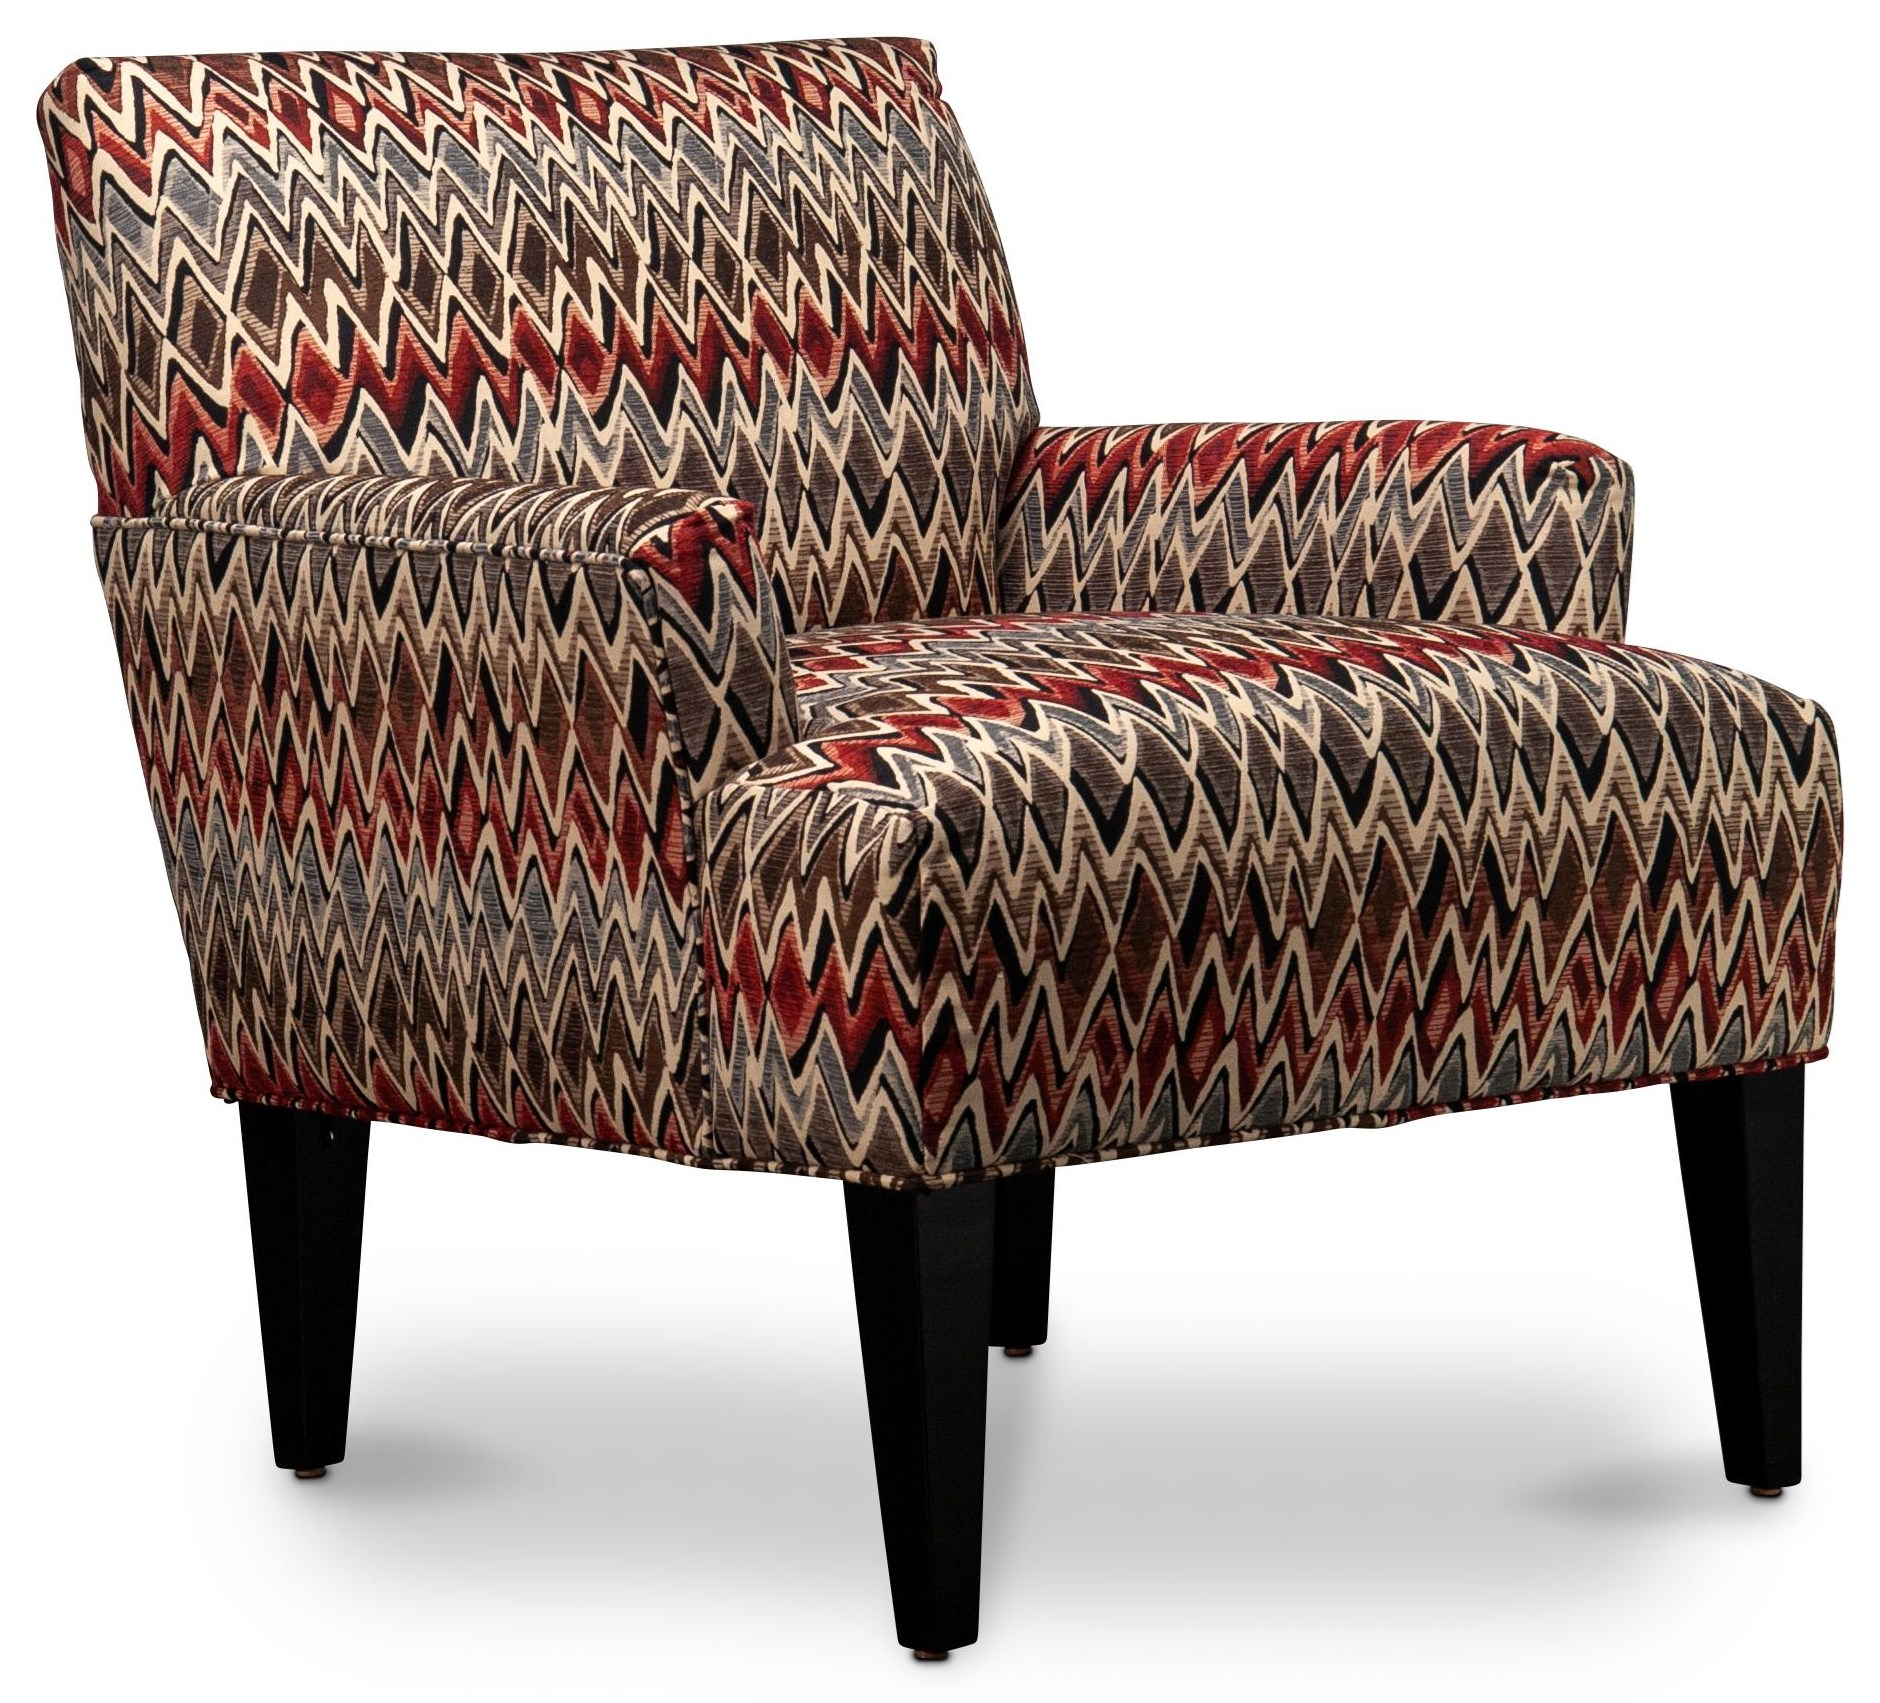 Nevaeh Nevaeh Accent Chair by Jonathan Louis at Morris Home